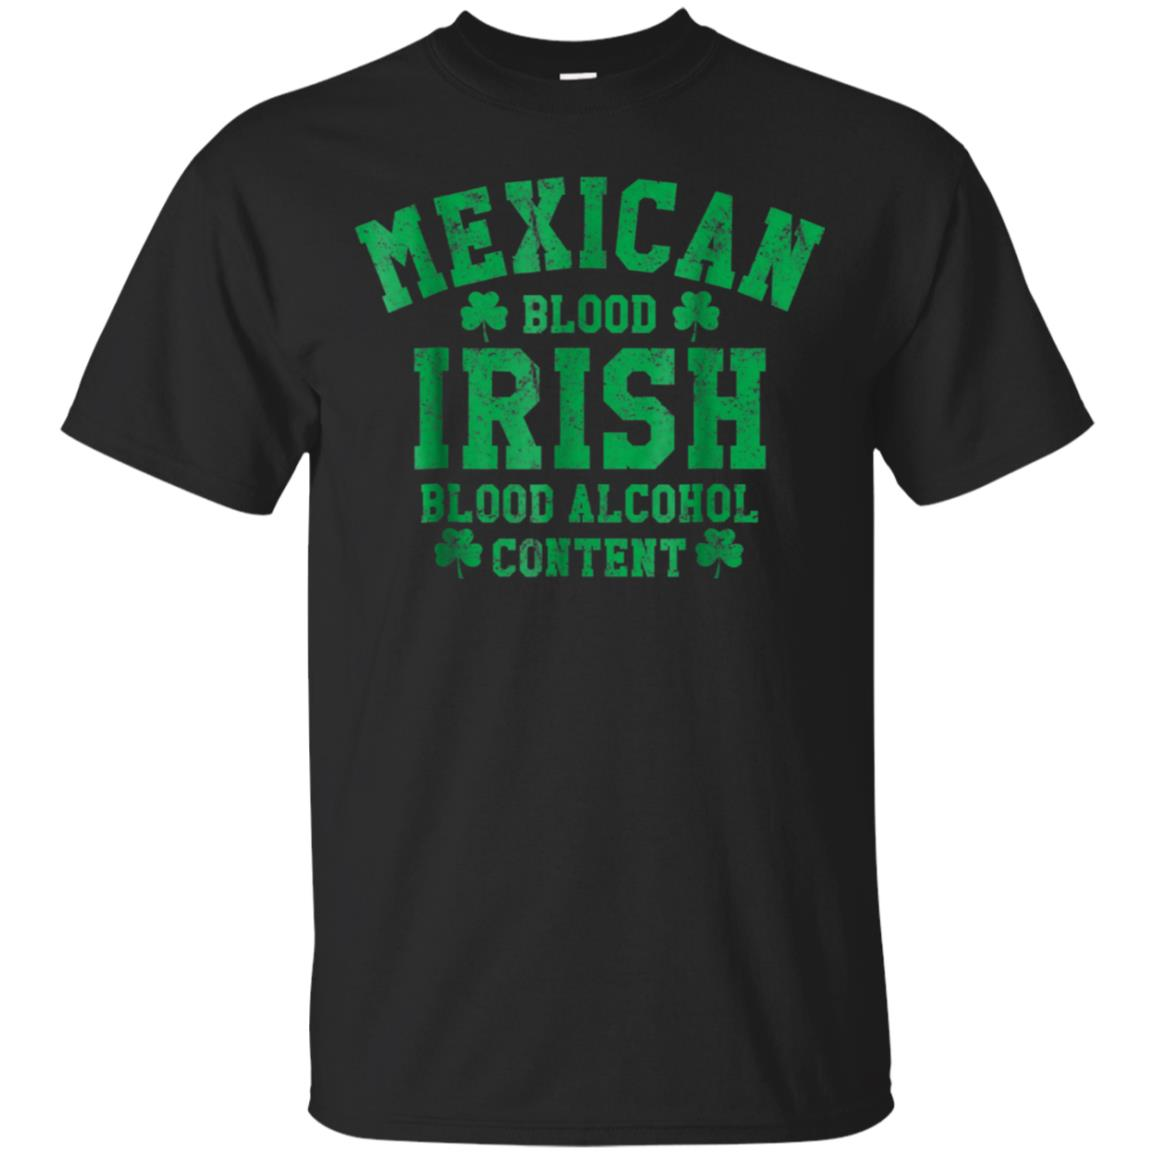 Mexican Blood Irish Blood Alcohol Content Funny Tee Shirt 99promocode